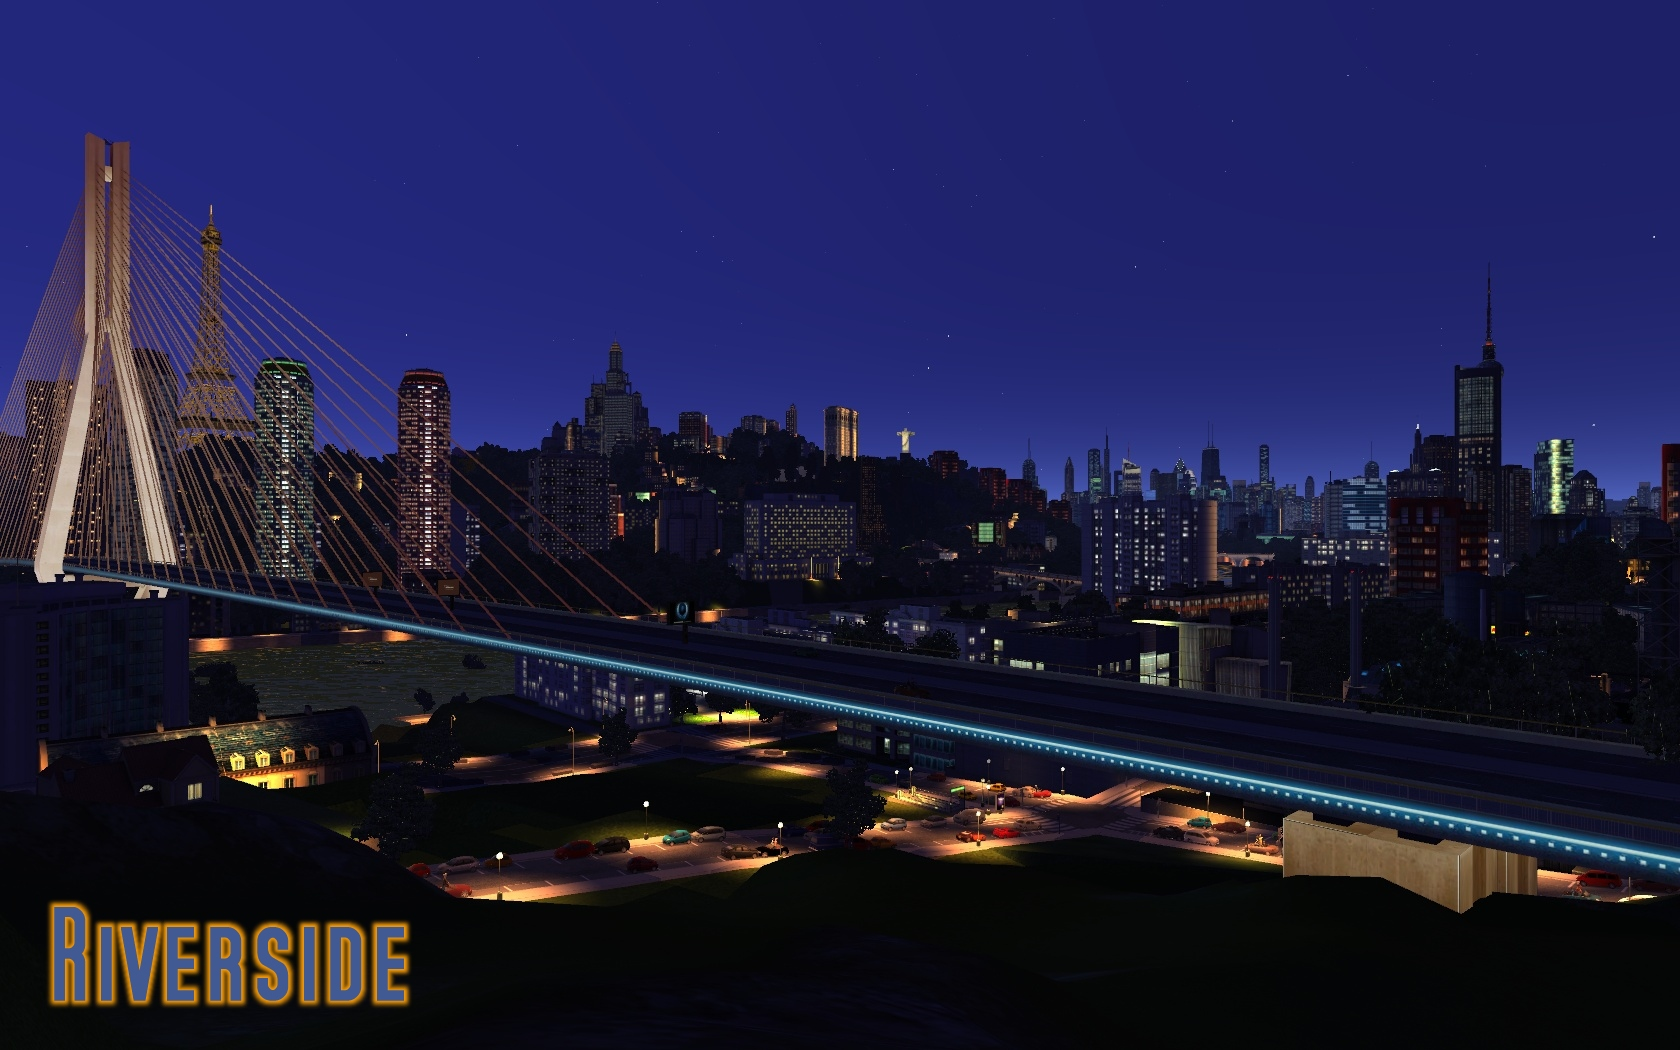 riverside-main.jpg